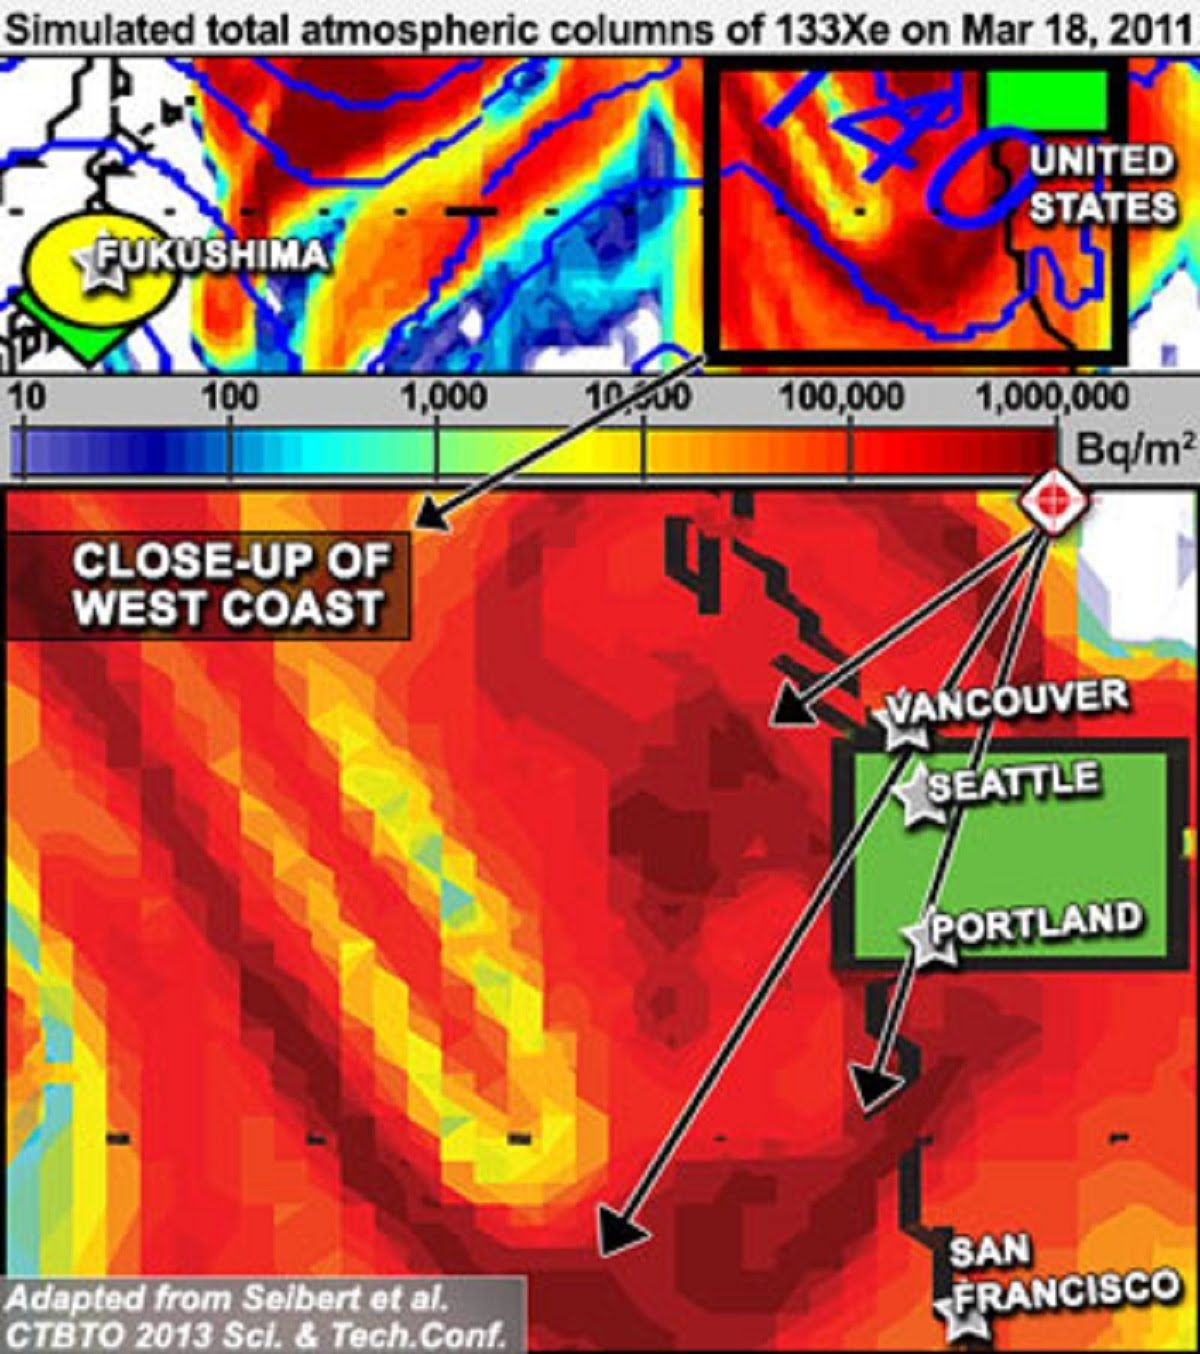 Fukushima  Initial Plume Exceeded 1 Million Bq/m3 Sustained On West Coast